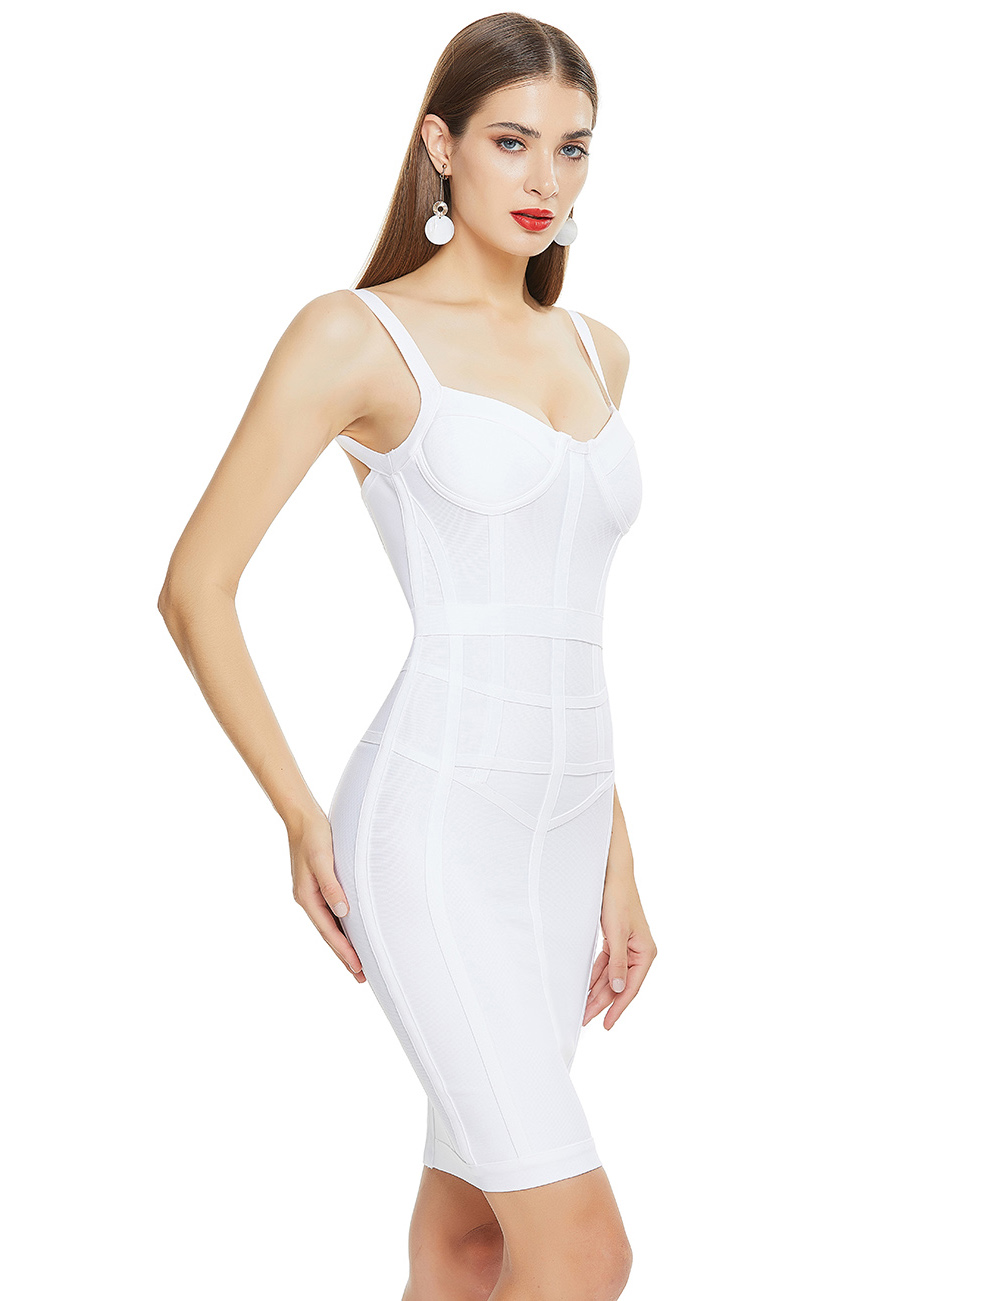 //cdn.affectcloud.com/hexinfashion/upload/imgs/dresses/Bandage_Dresses/VZ191303-WH1/VZ191303-WH1-201911225dd75b3958dea.jpg